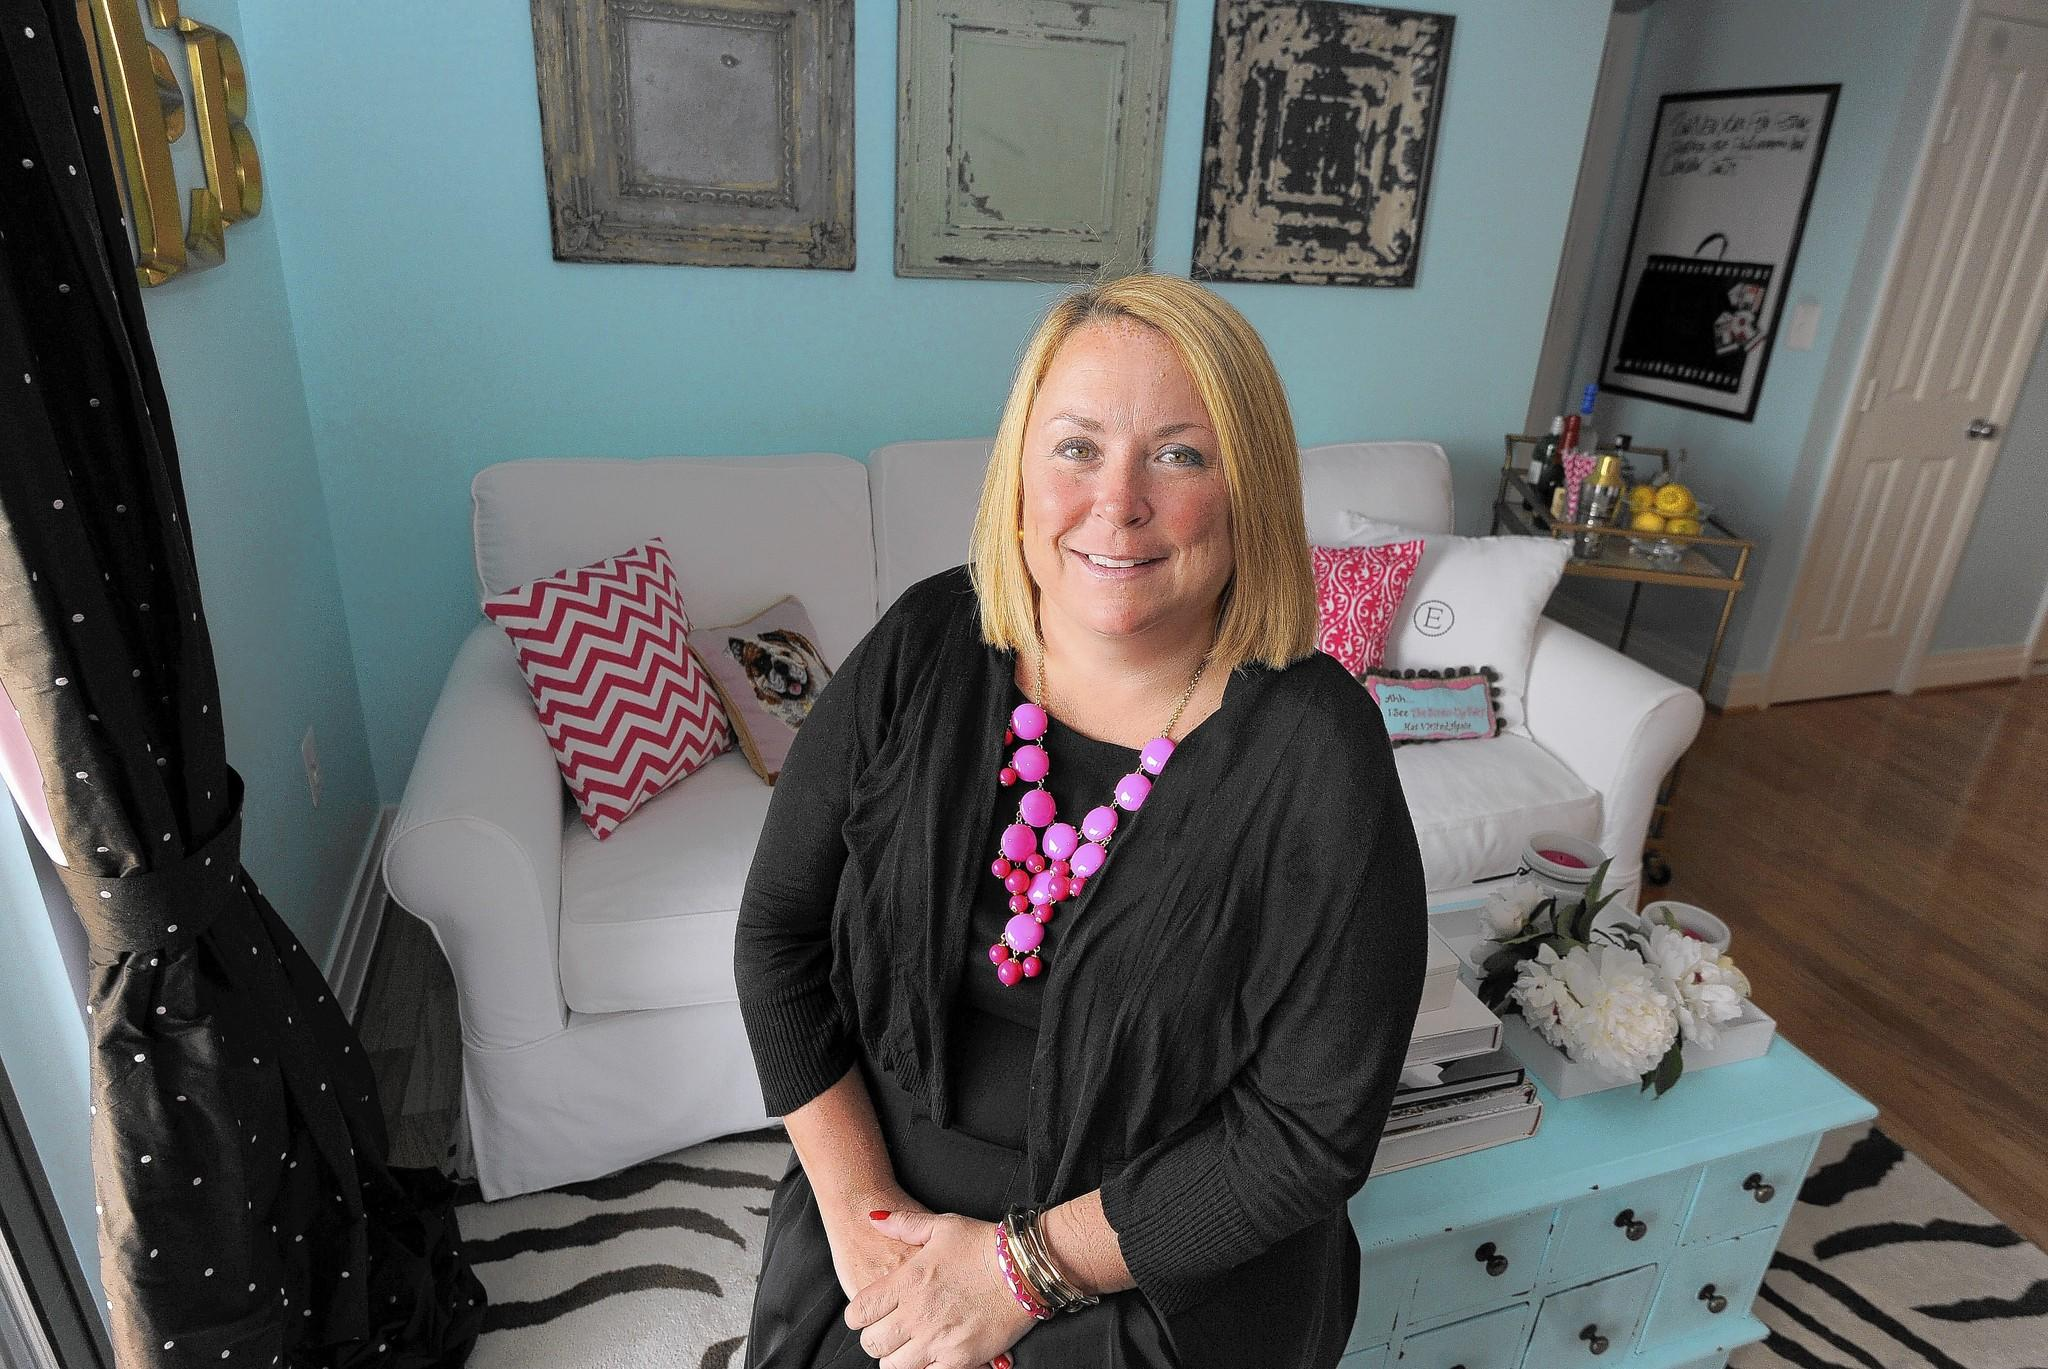 Baltimore, MD-6/19/14-Jennifer Etheridge is pictured in the living room of her dream home. Algerina Perna/Baltimore Sun--#2418.